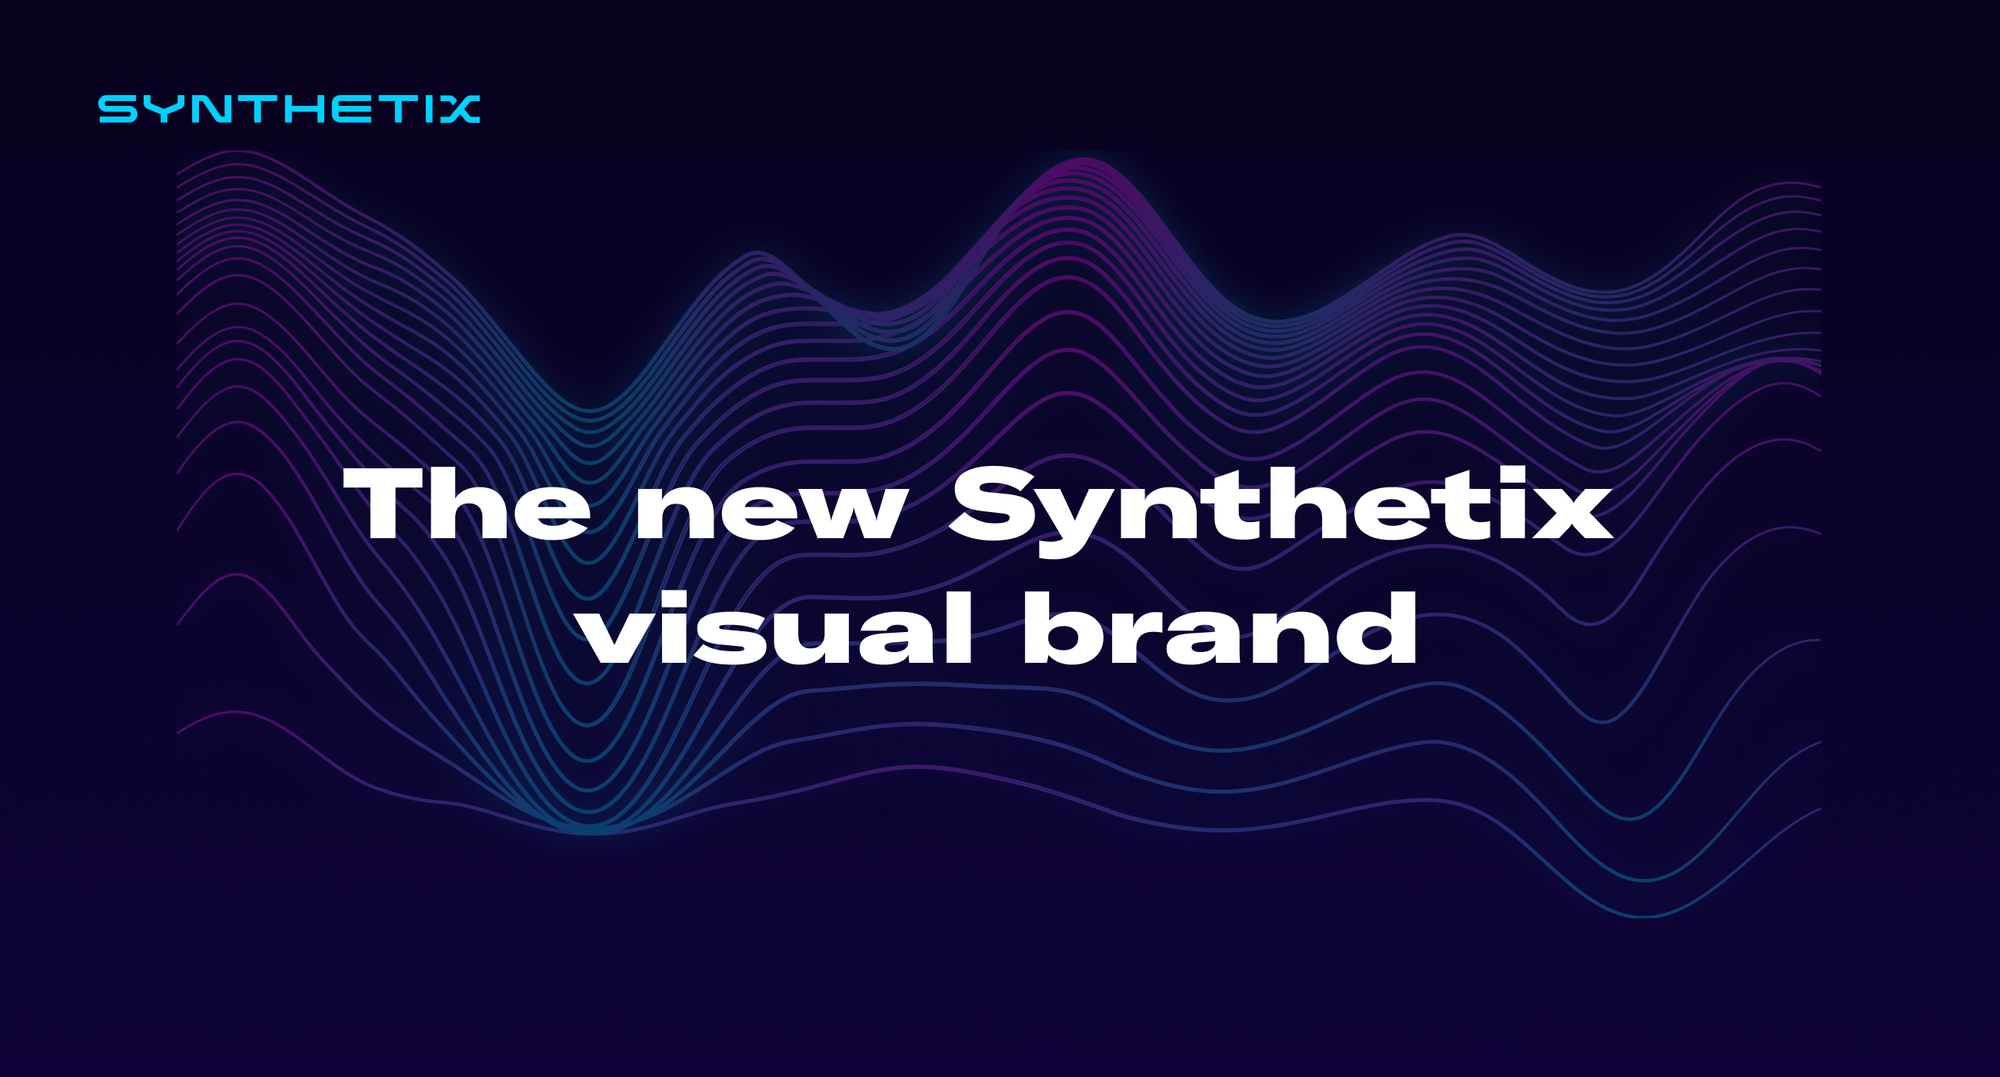 Introducing the new Synthetix visual brand